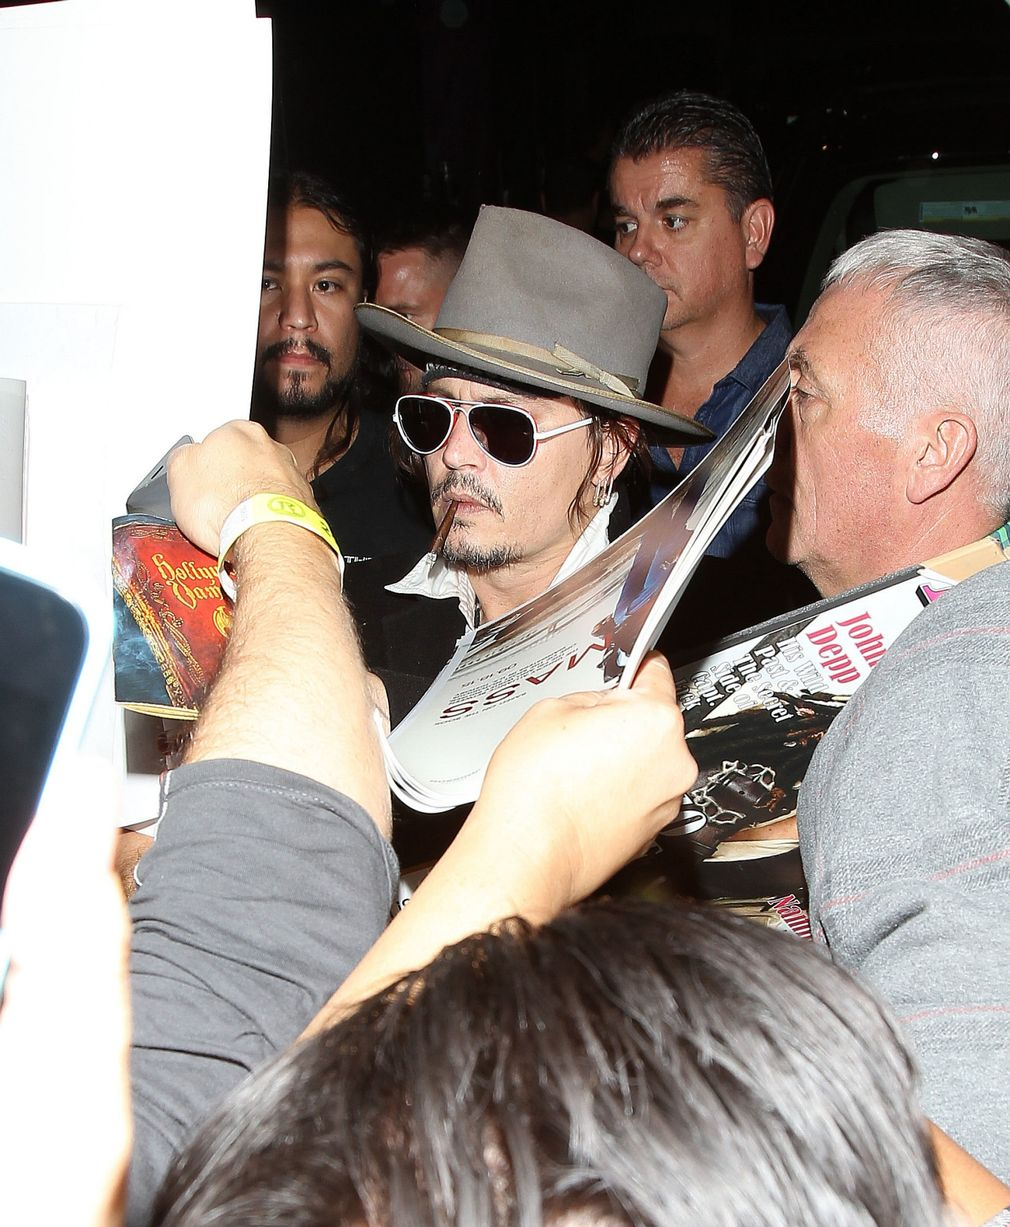 Johnny-Depp-Hollywood-Vampires.jpg